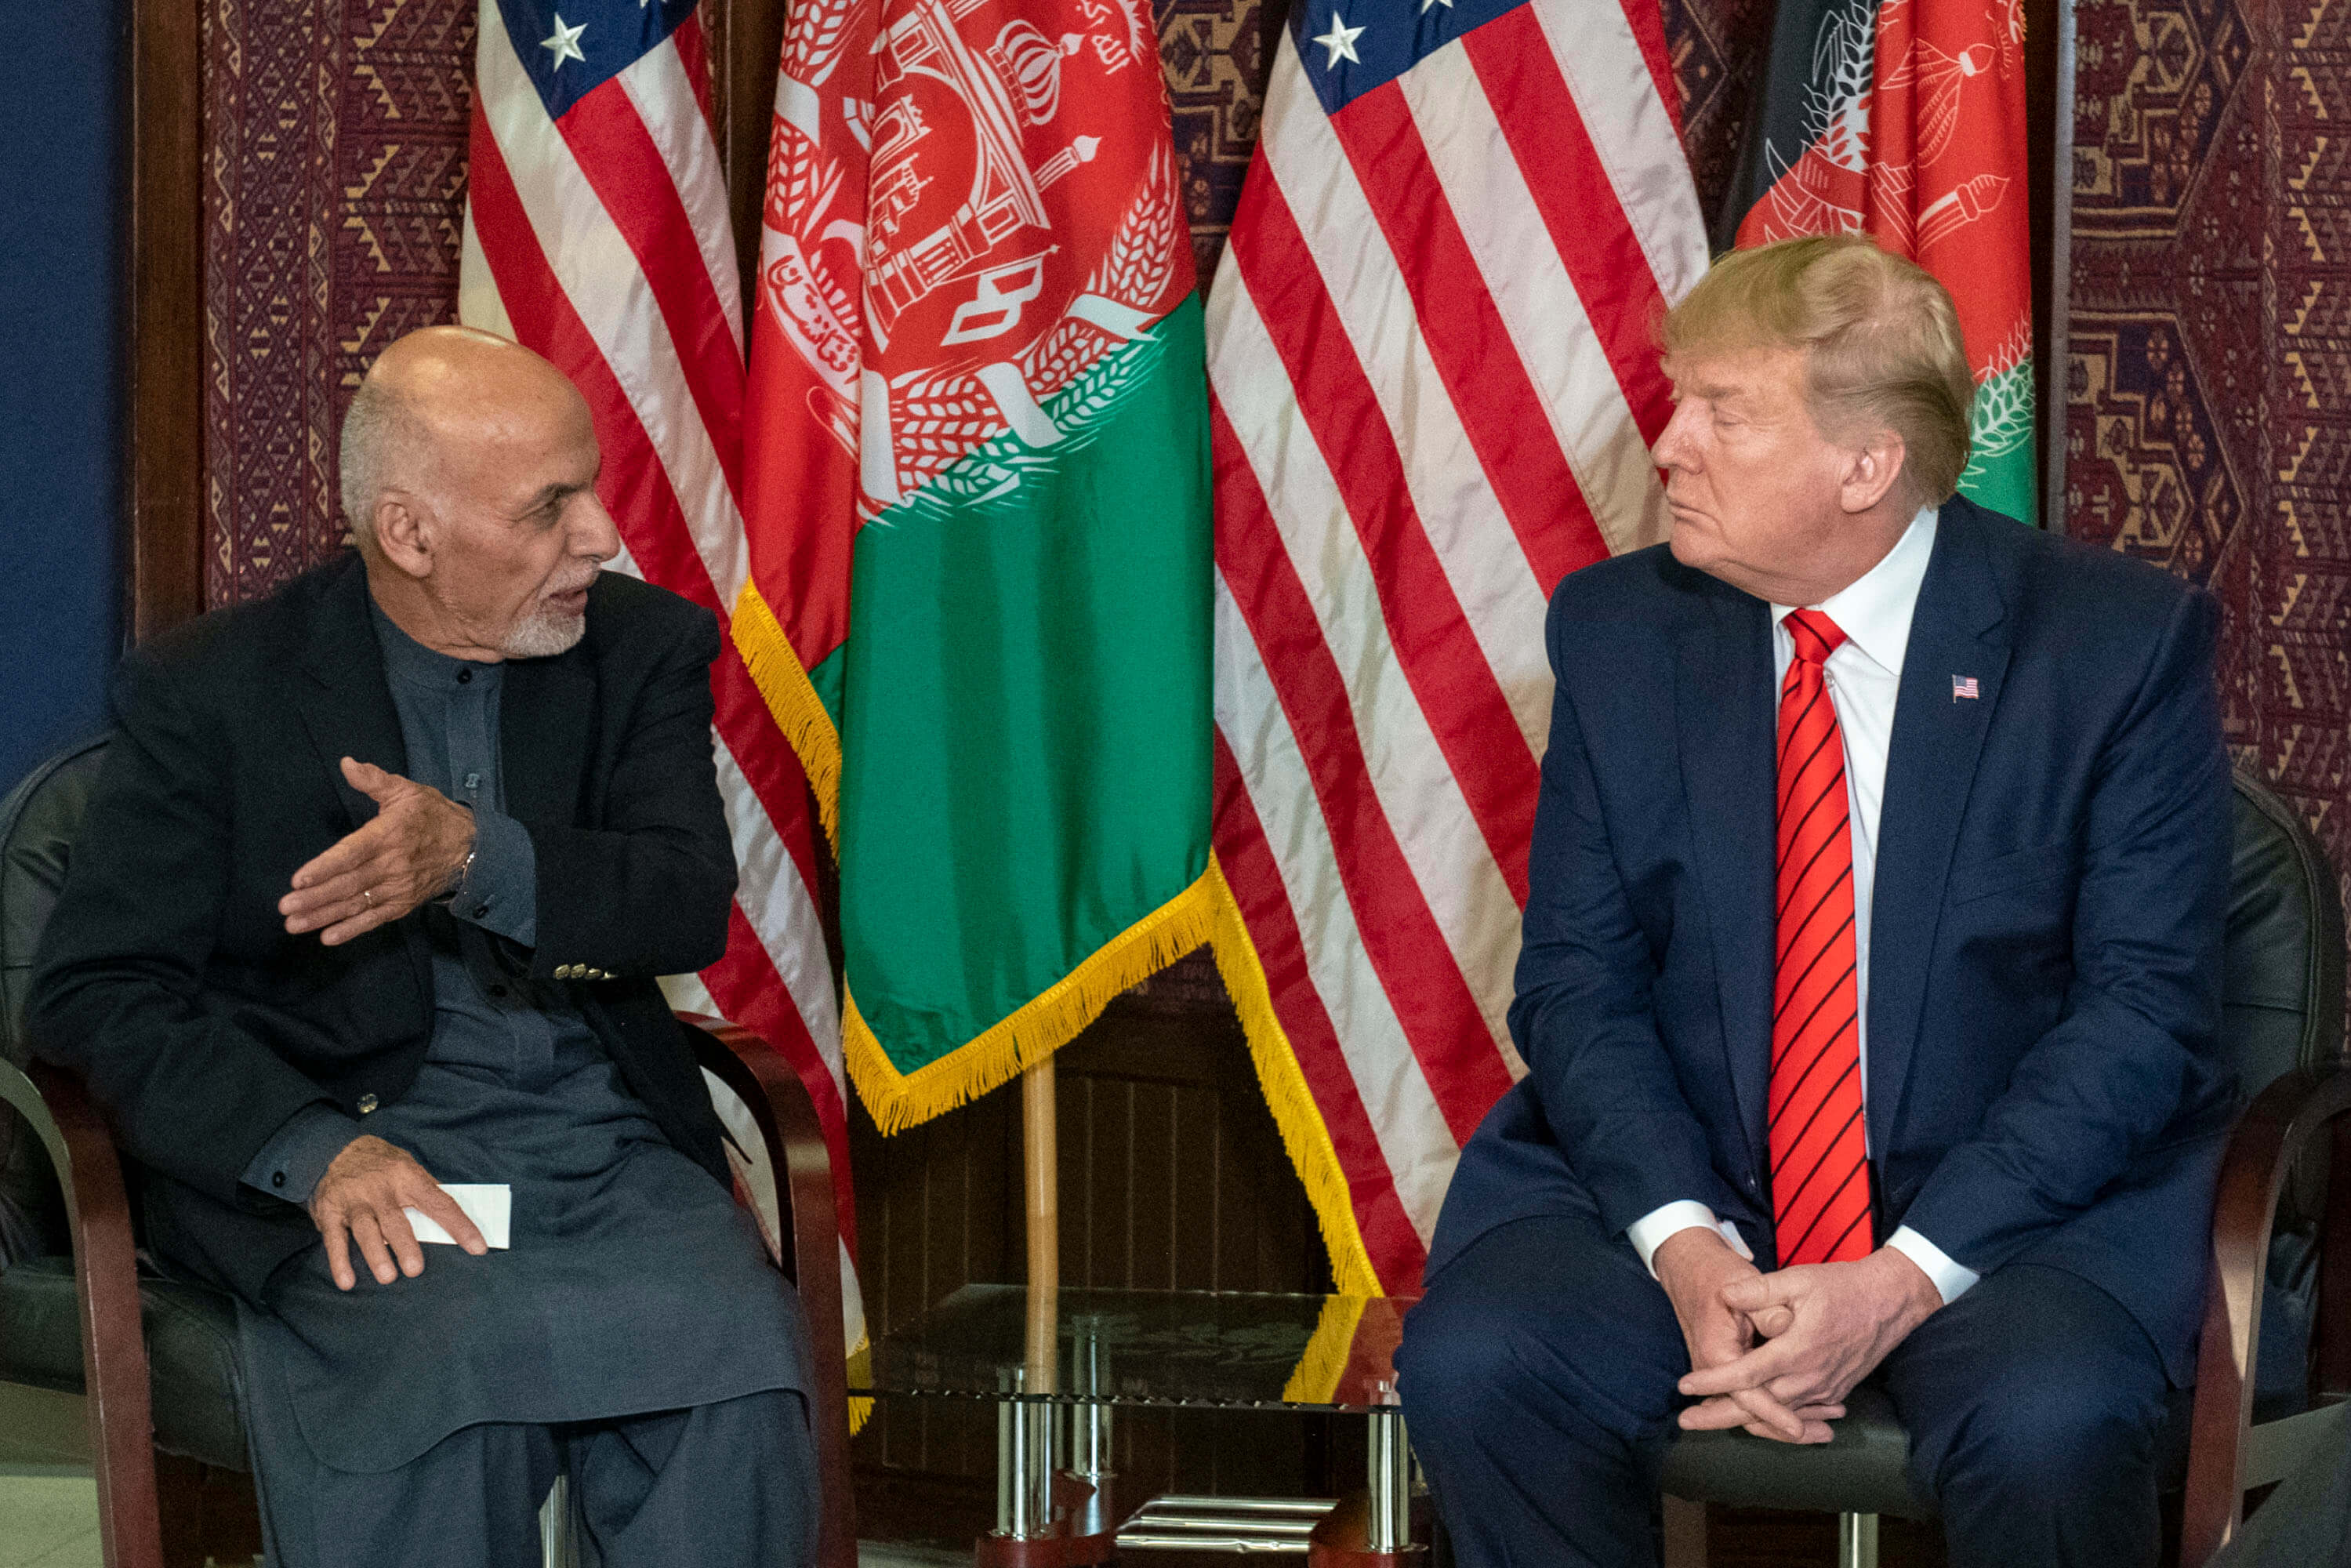 President of the United States Donald J. Trump and President of Afghanistan Ashraf Ghani have a meeting at Bagram Airfield in Afghanistan, November 2019. © Chairman of the Joint Chiefs of Staff/Flickr